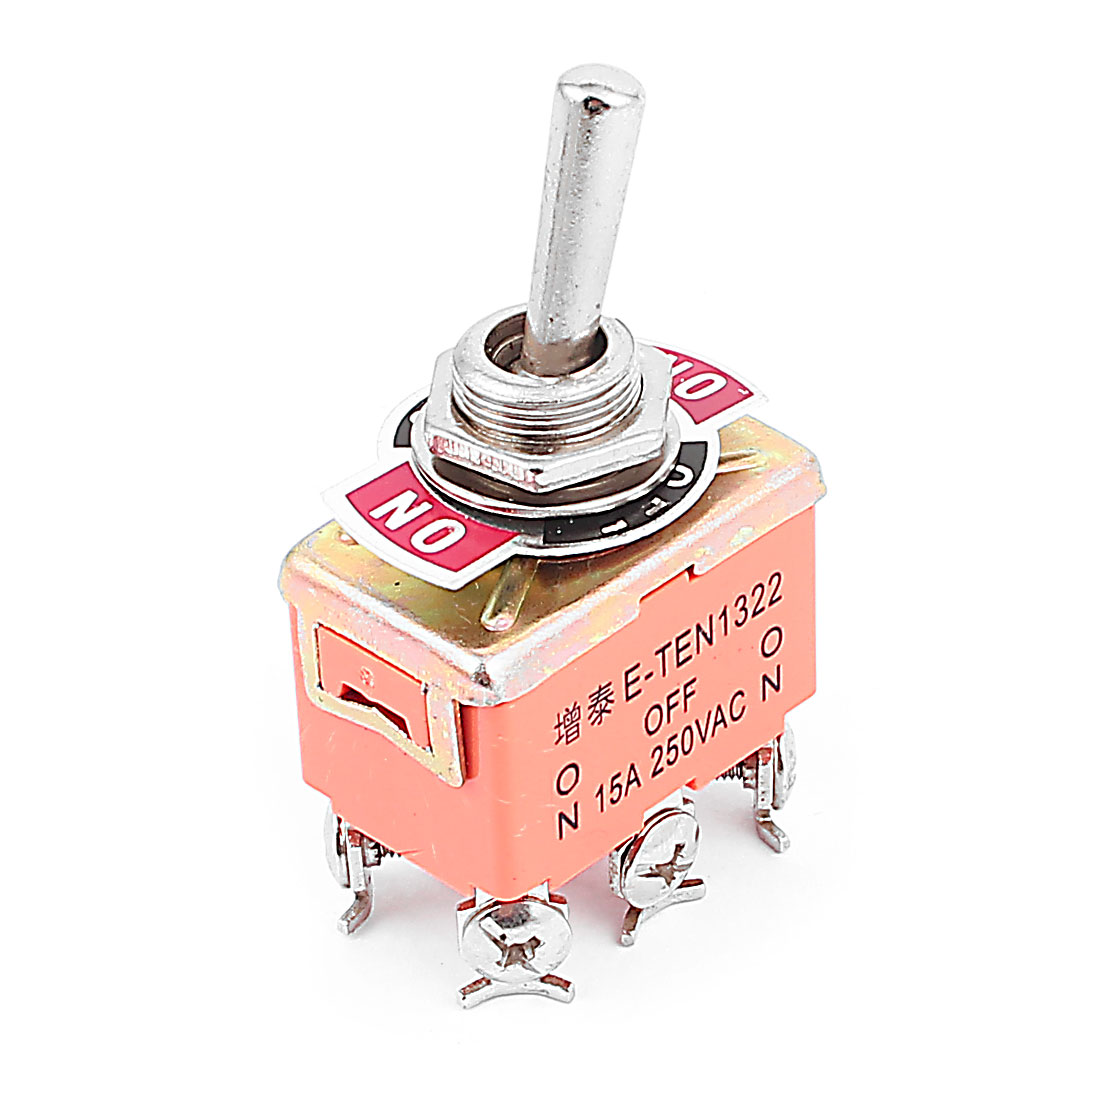 AC 250V 15A 6 Screw Terminals ON-OFF-ON 3 Position Latching Toggle Switch